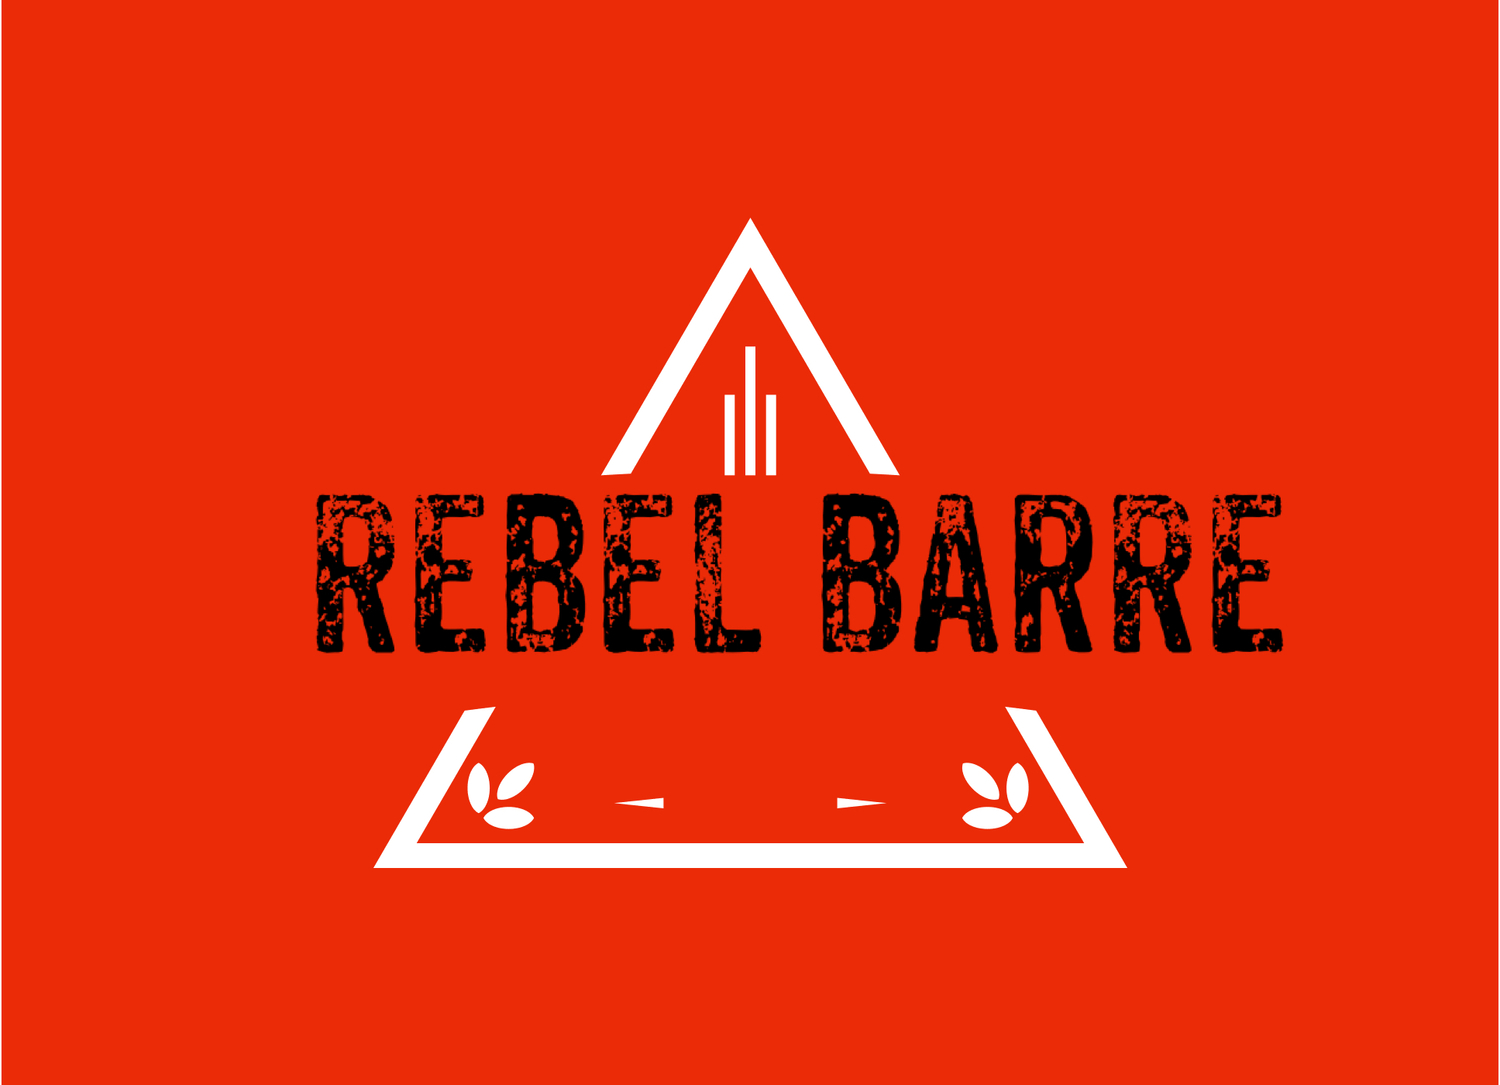 Rebel Barre